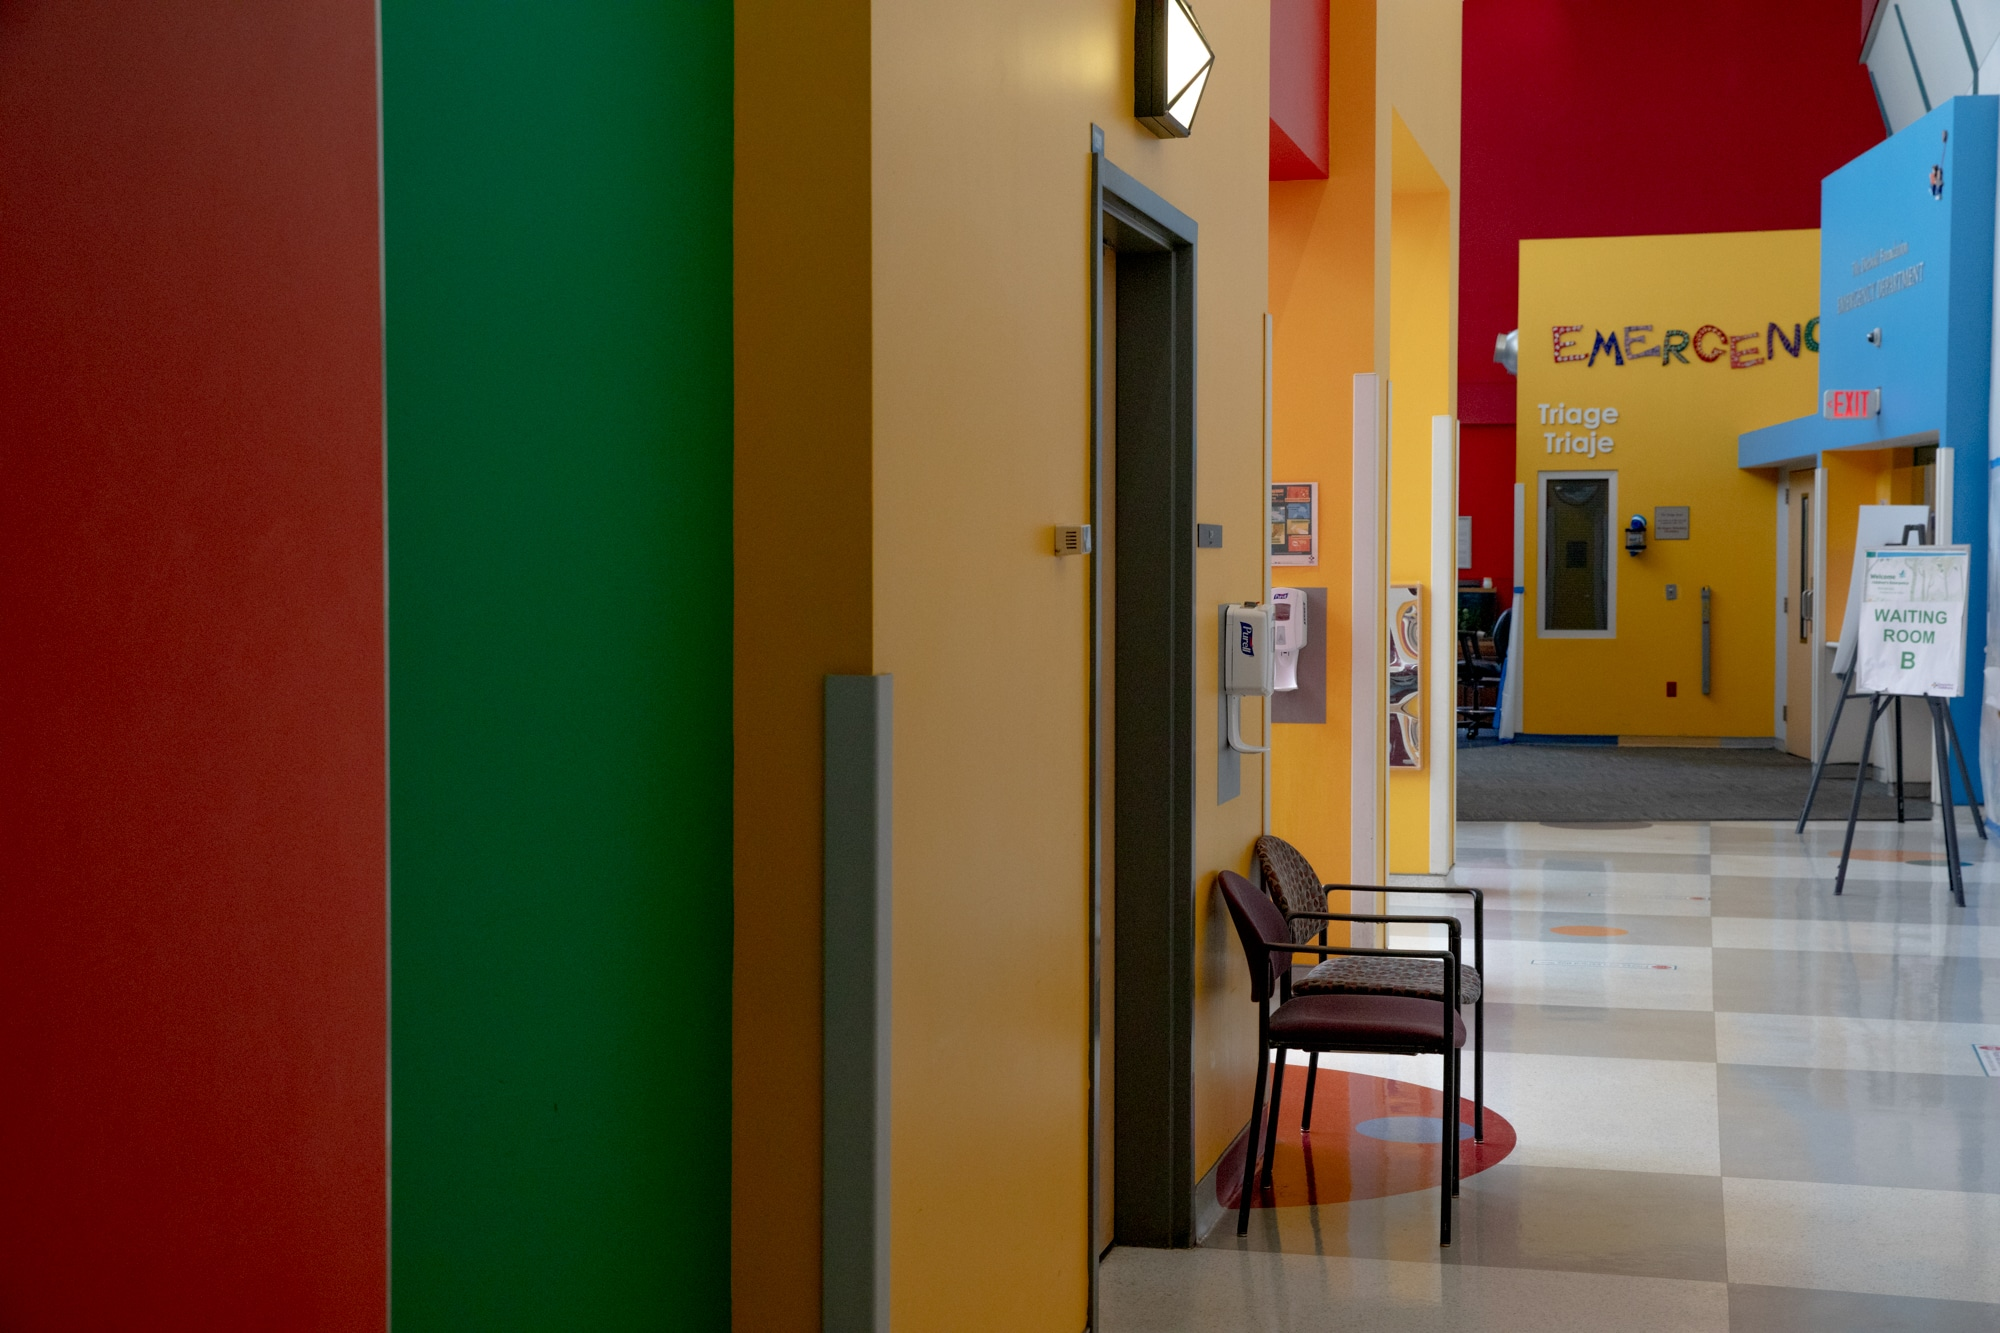 Children with psychiatric needs are overwhelming hospital emergency departments in CT